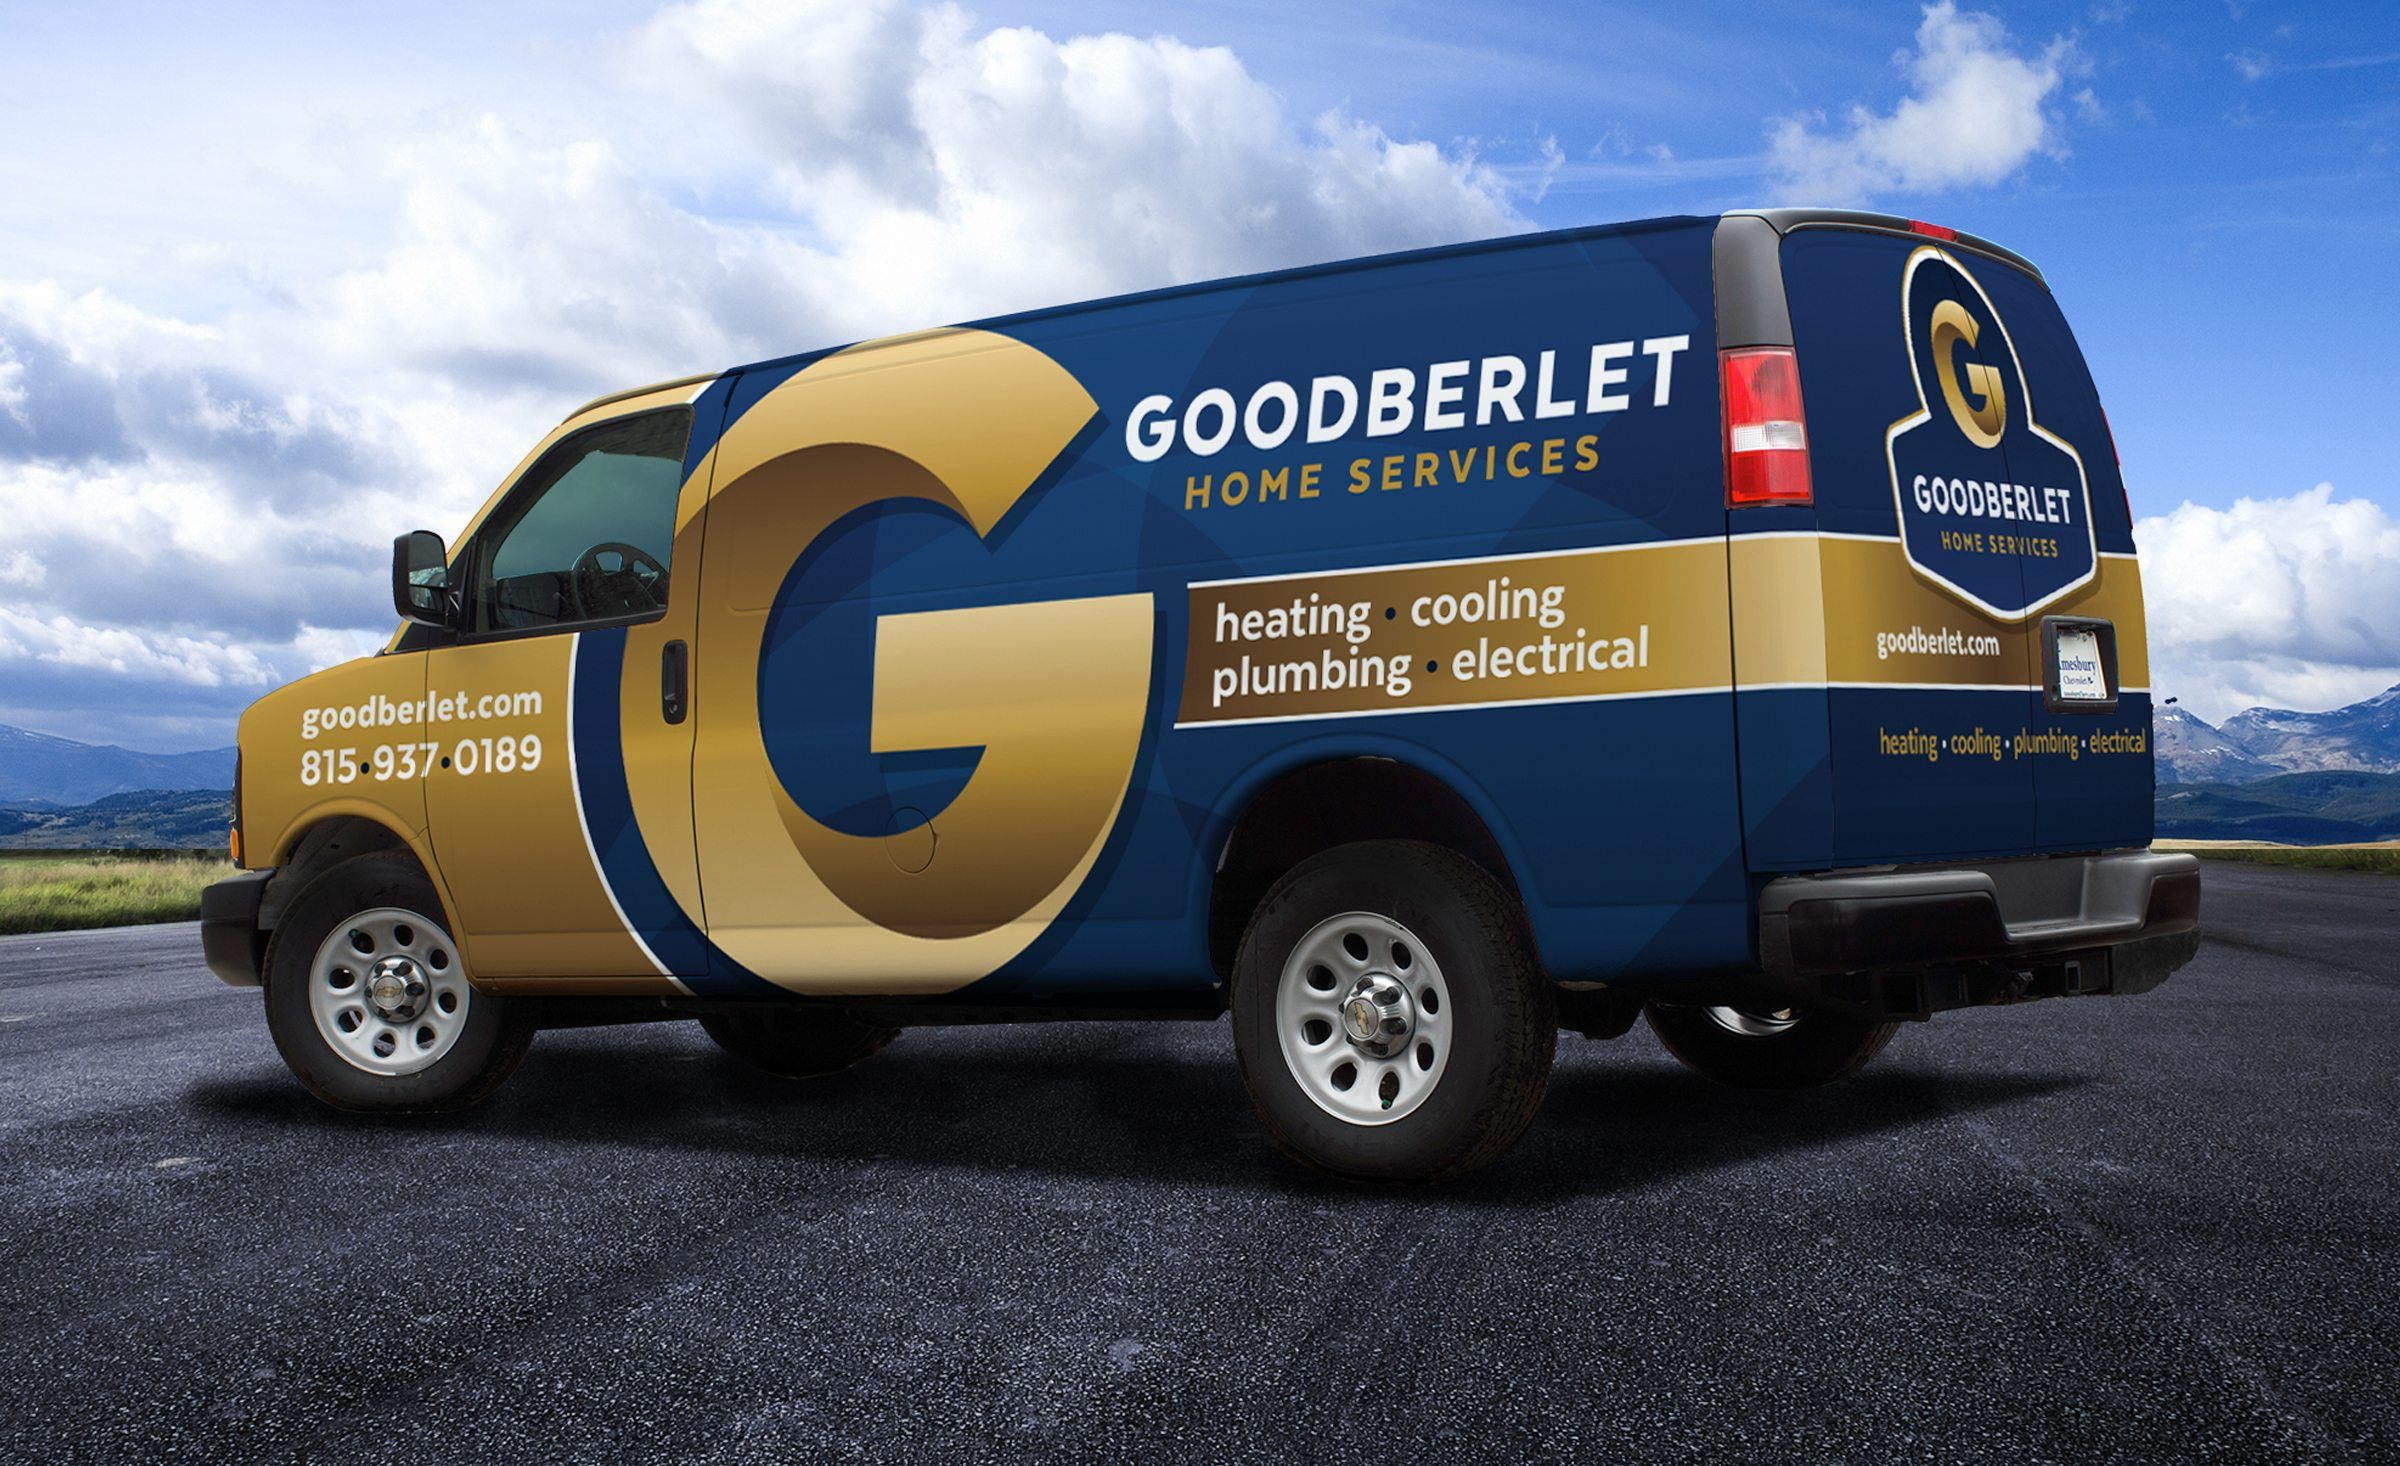 The Best Vehicle Wraps Use Simple Easy To Read Graphics As This